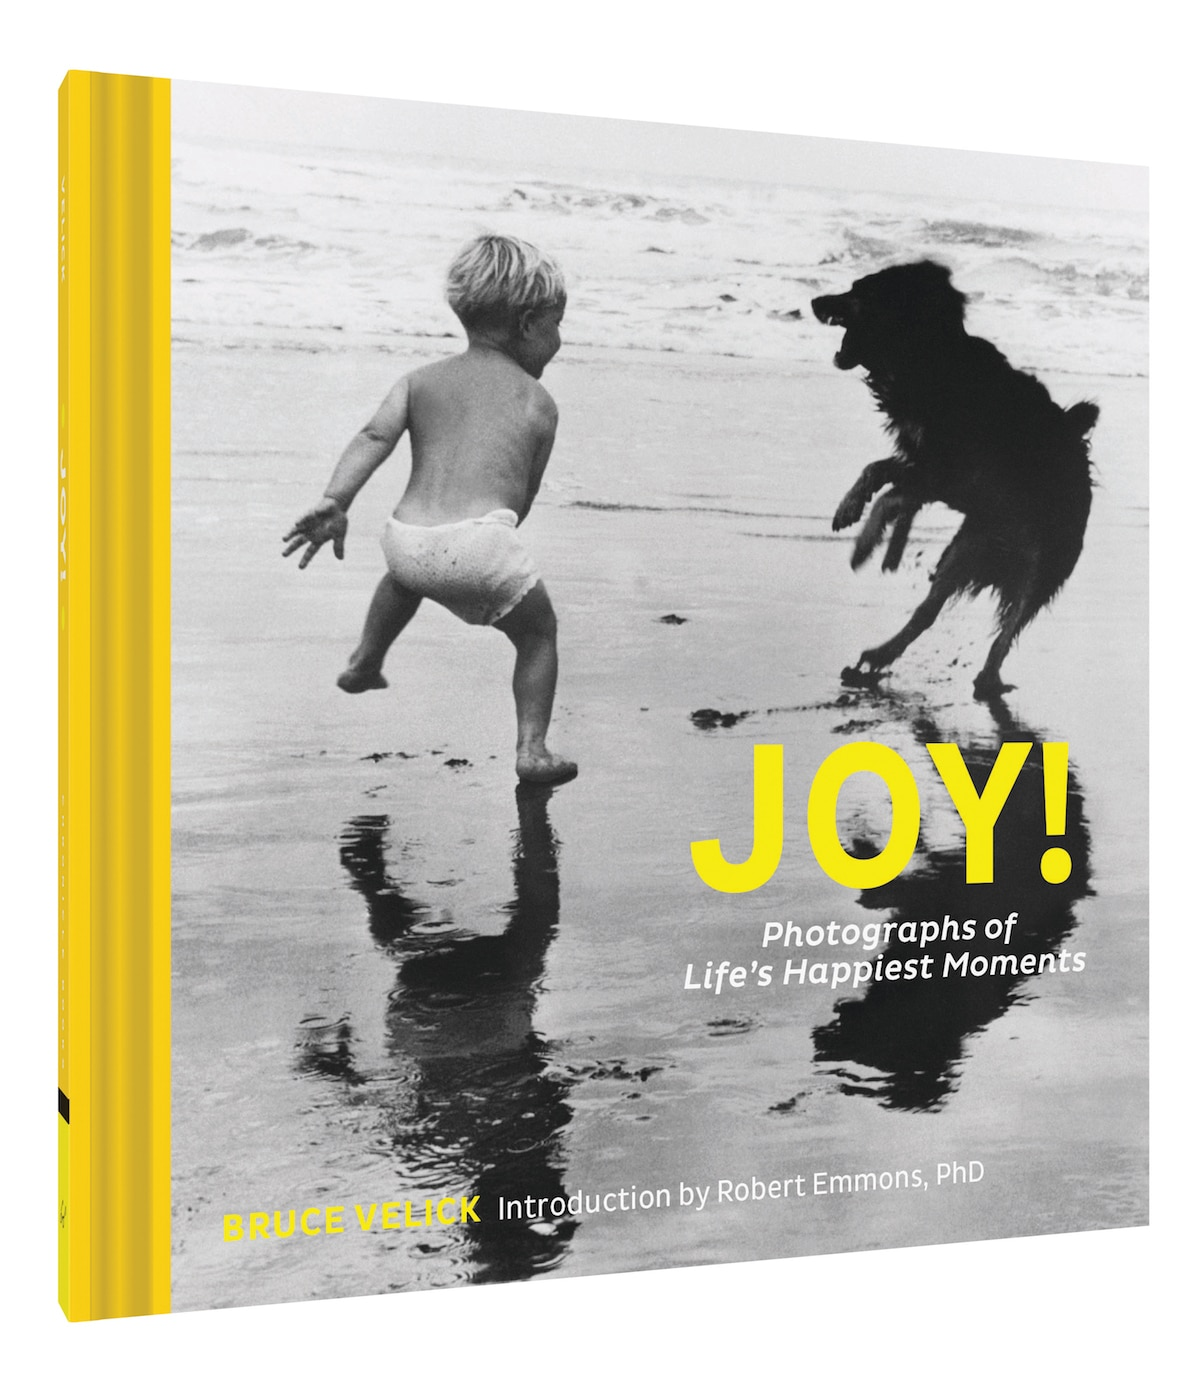 Joy Photographs of Life's Happiest Moments Joy Book Uplifting Photos Robert Emmons Bruce Vellick